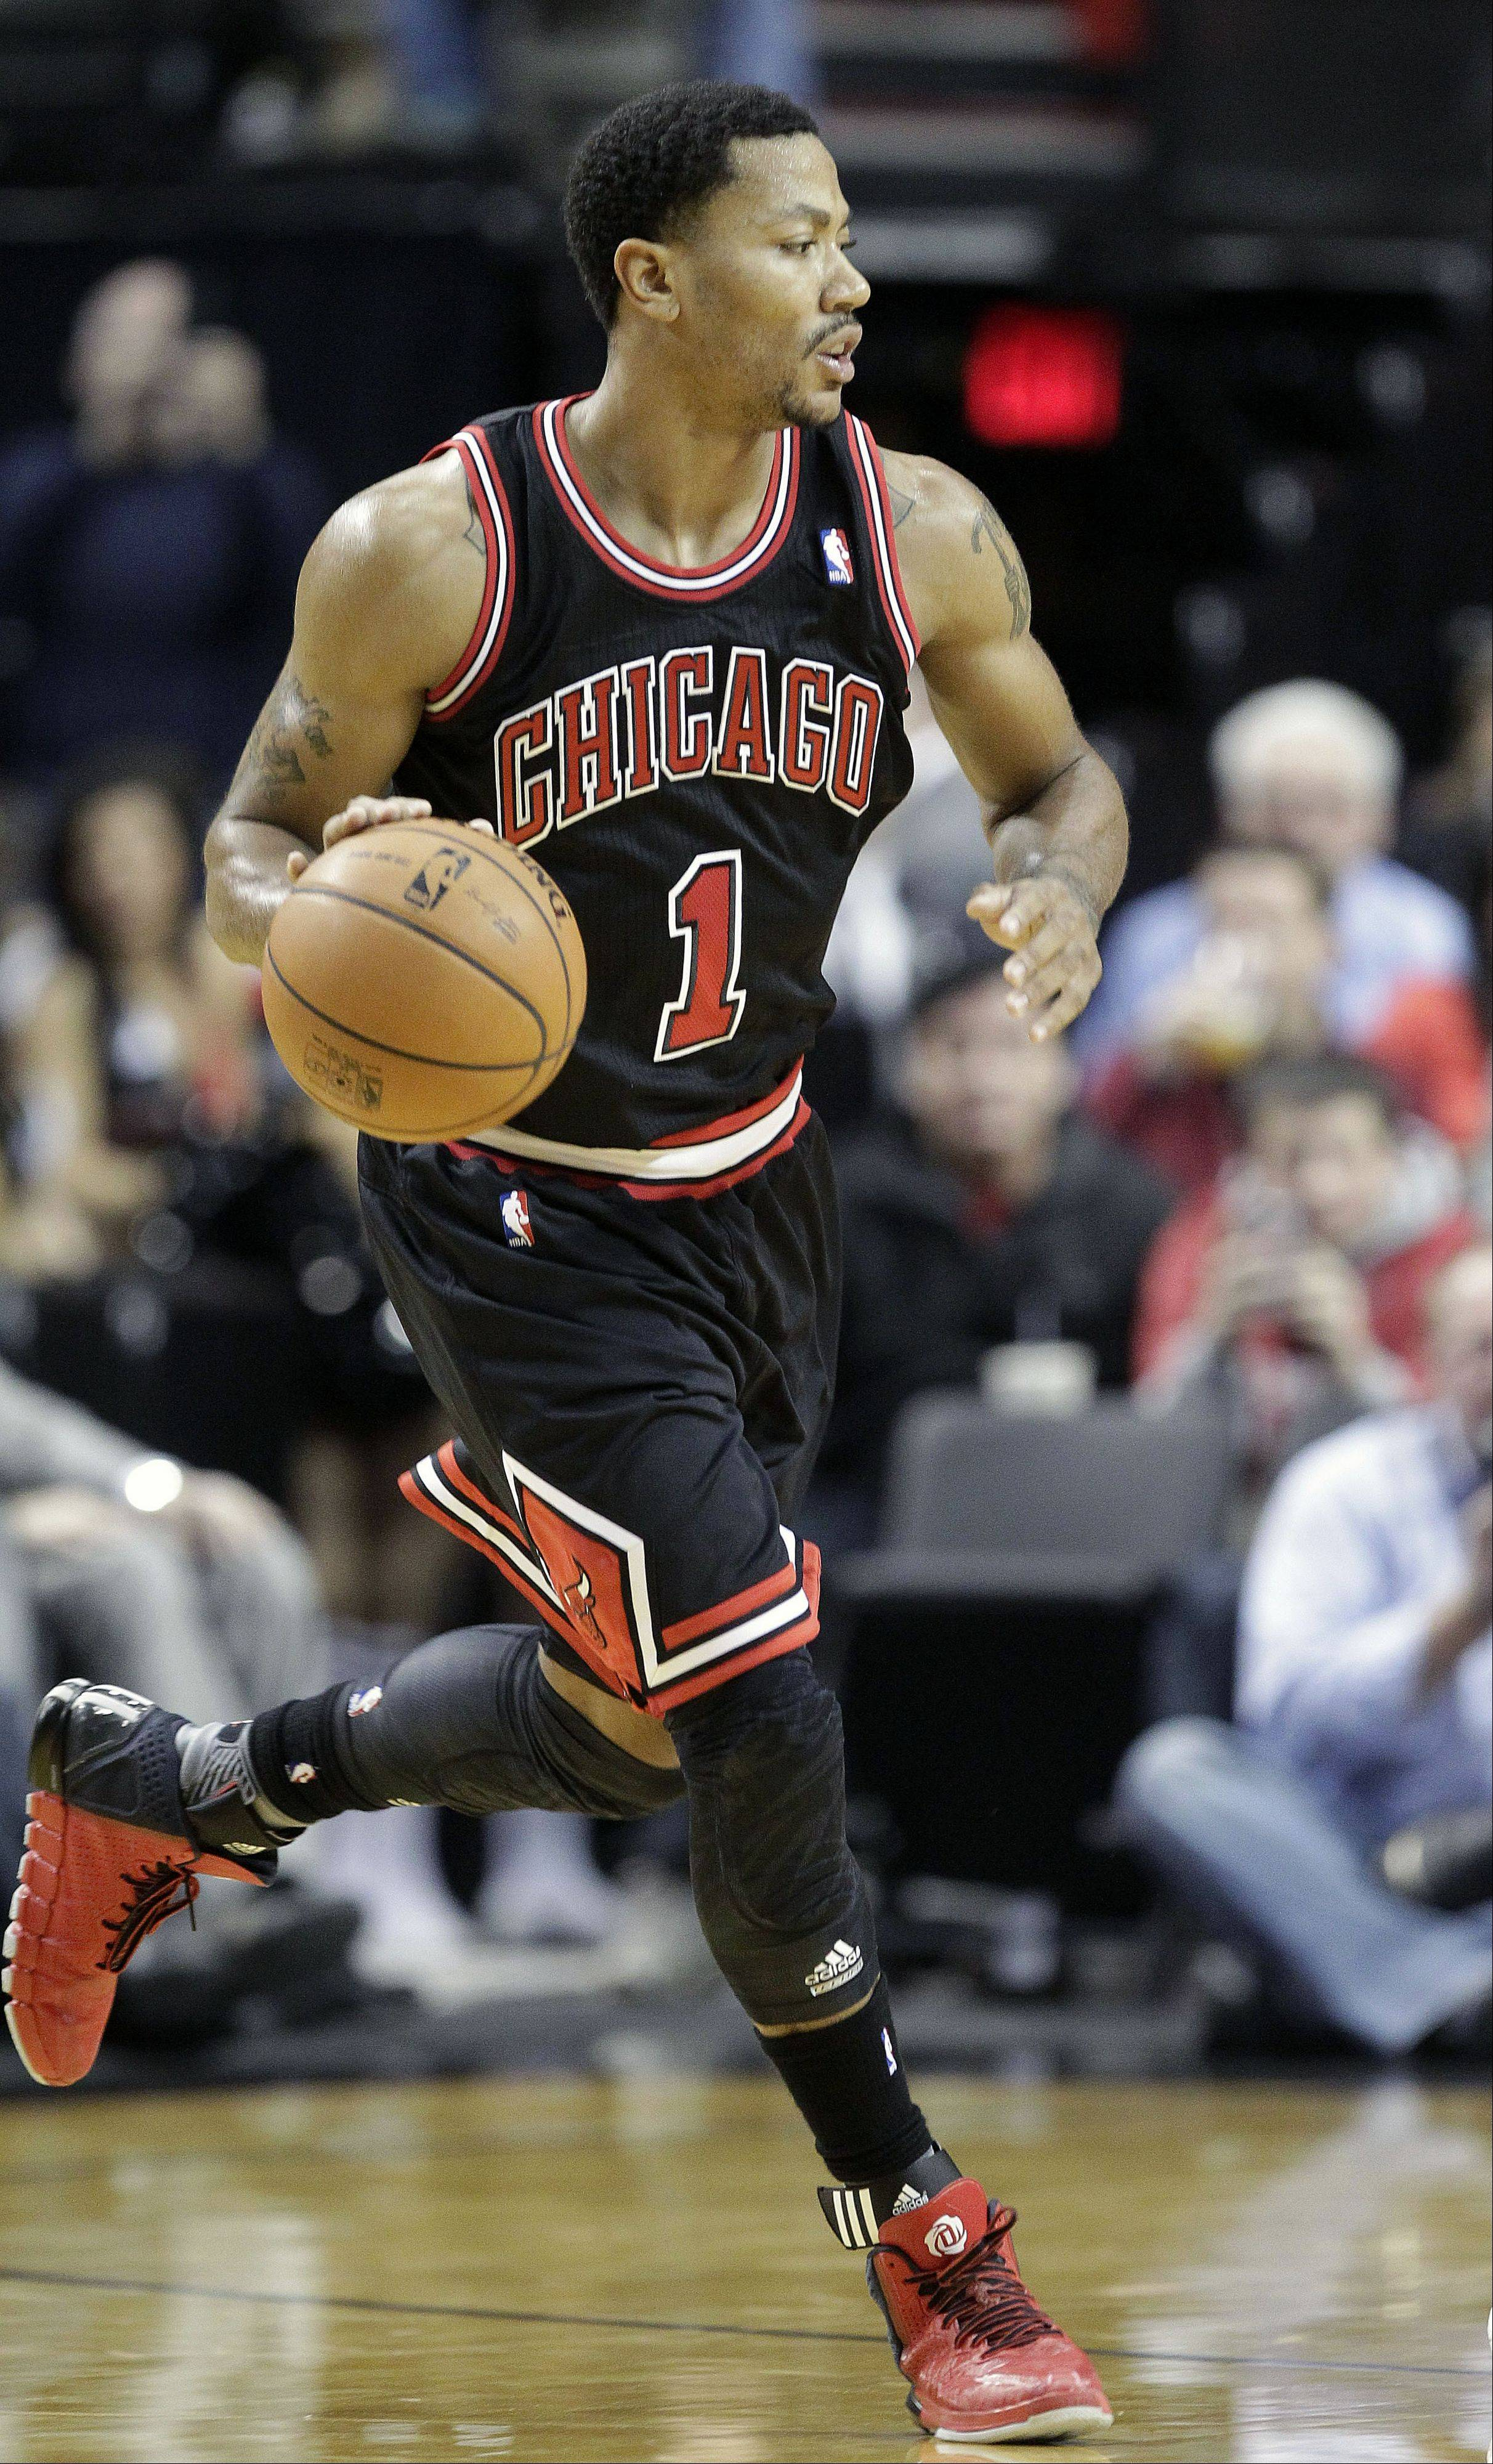 With all-star guard Derrick Rose again gone for the rest of the season, there really might not be a fair plan for those many Bulls season-ticket holders.